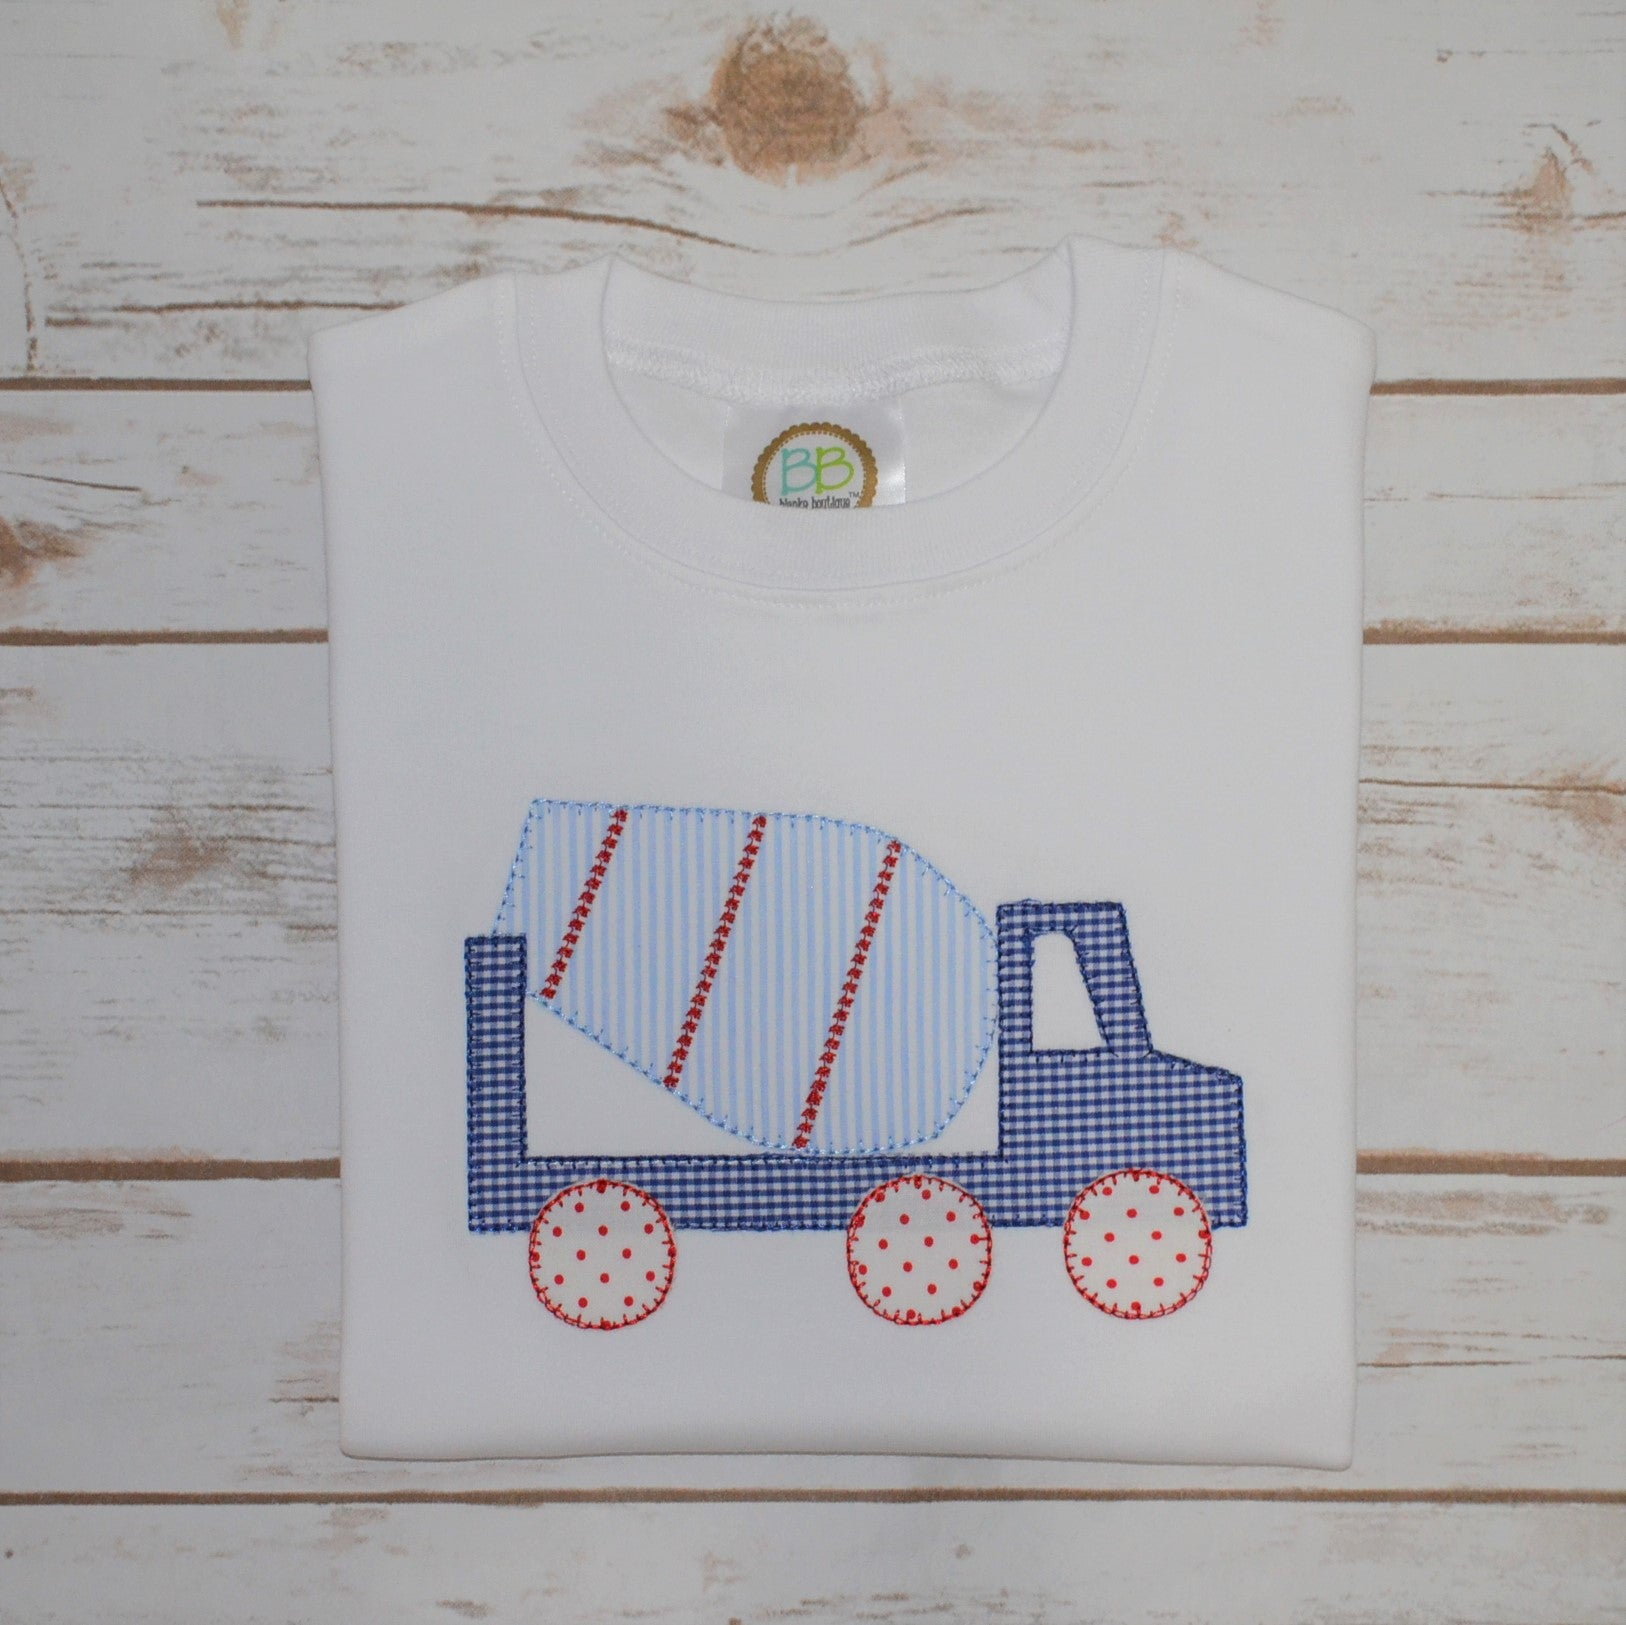 Boy's Cement Mixer Shirt